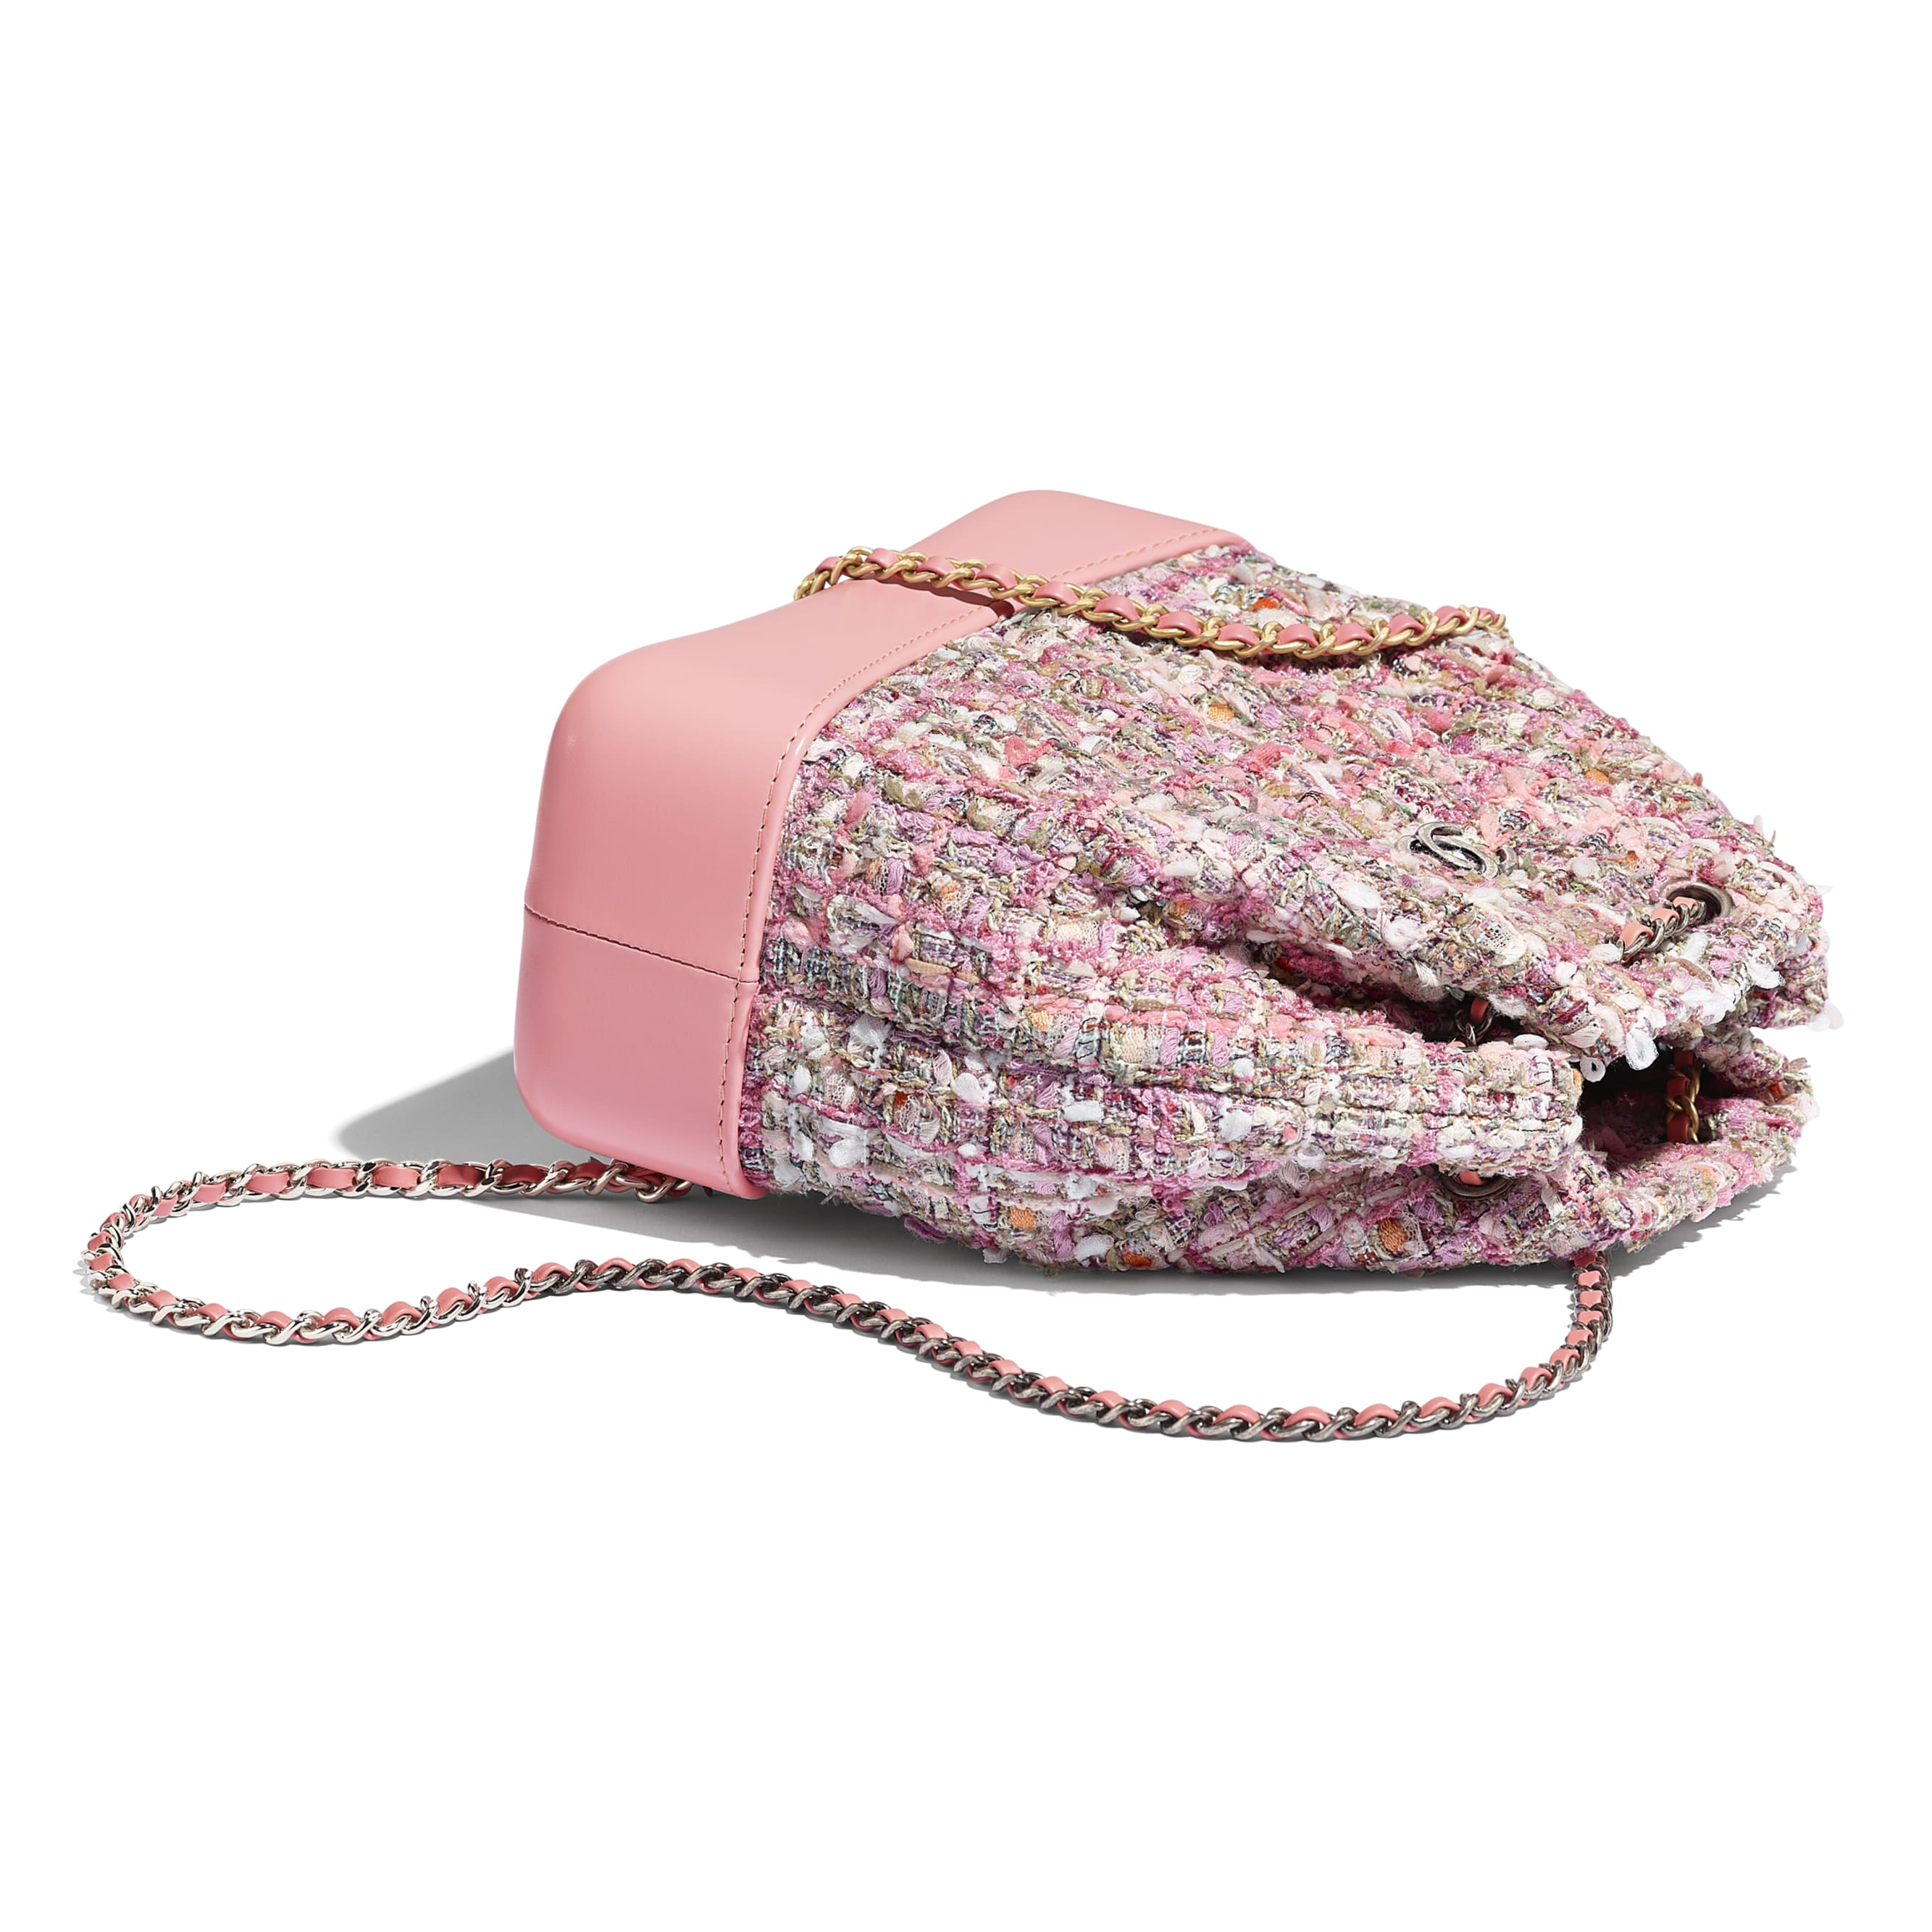 CHANEL'S GABRIELLE Small Backpack - Pink, Beige, Orange & Ecru - Tweed, Shiny Calfskin & Gold-Tone & Silver-Tone Metal - Other view - see standard sized version